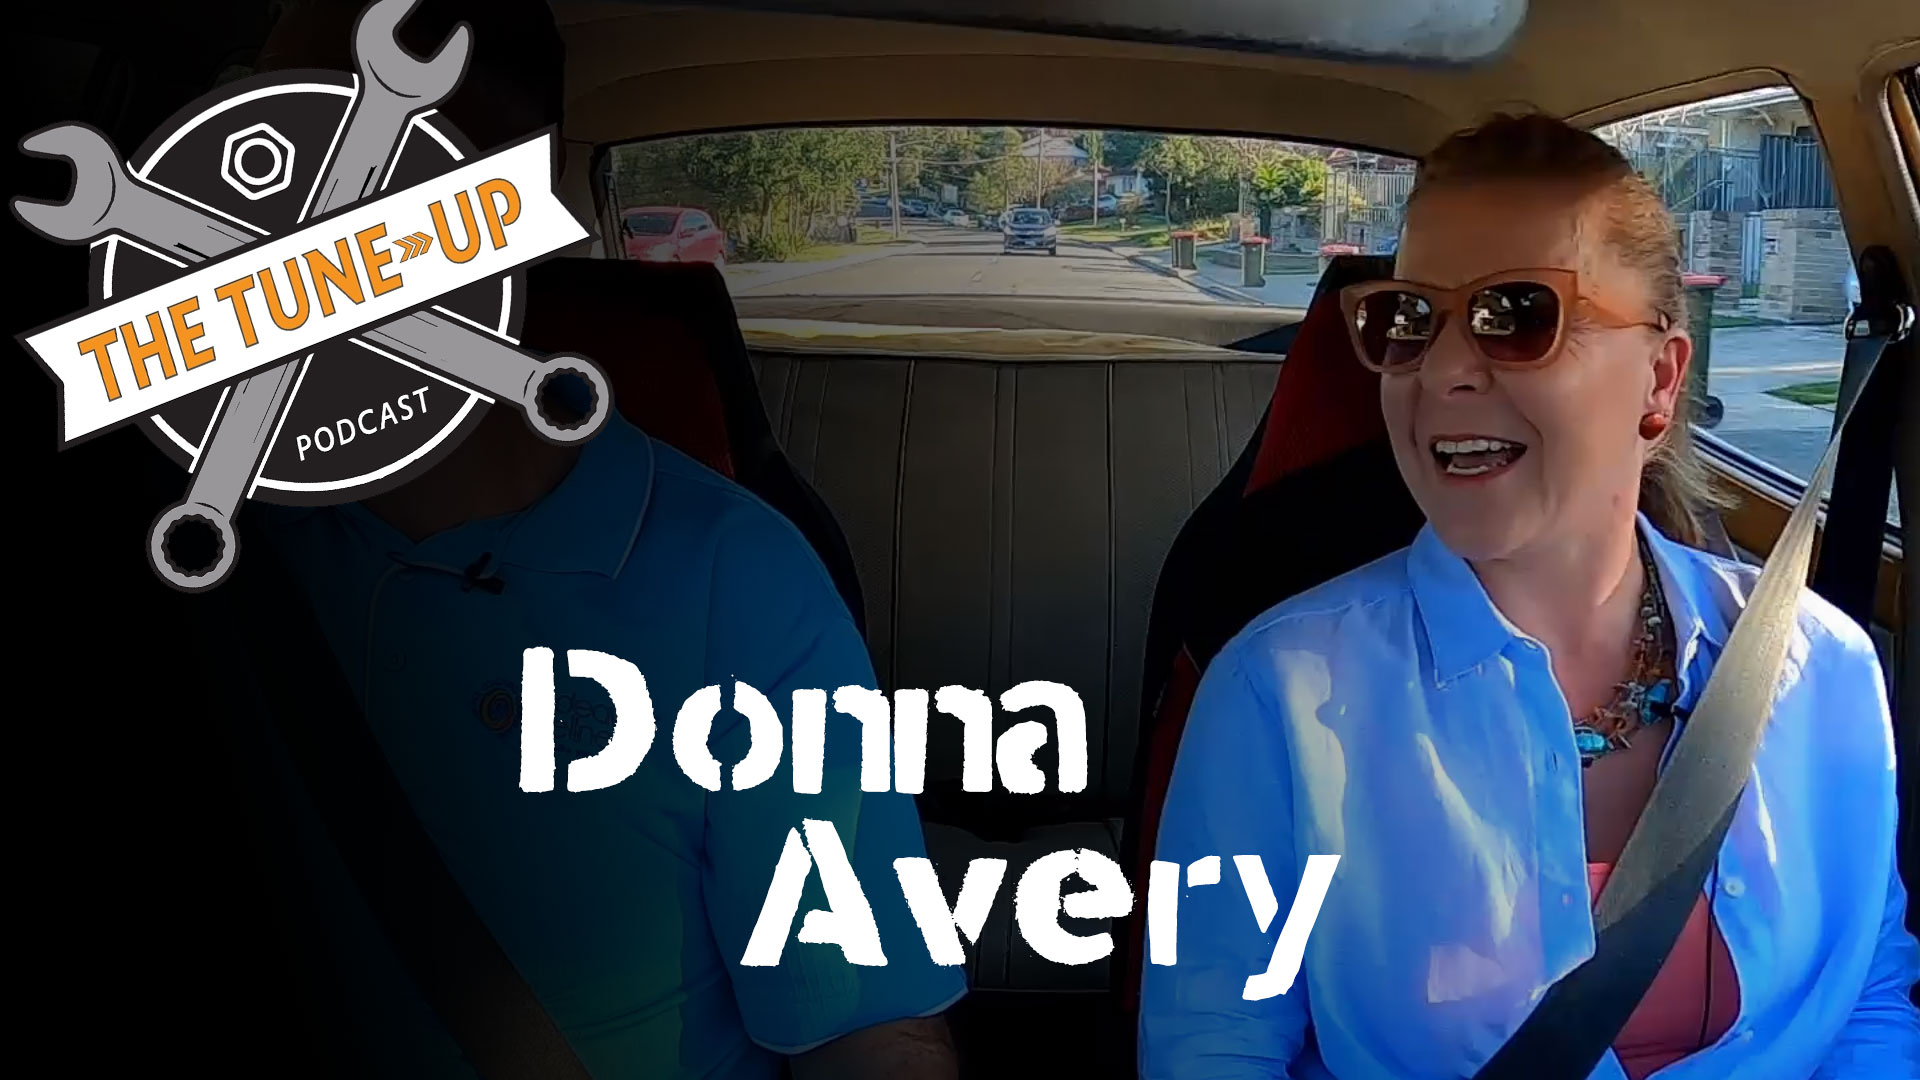 Donna Avery Tune Up Podcast